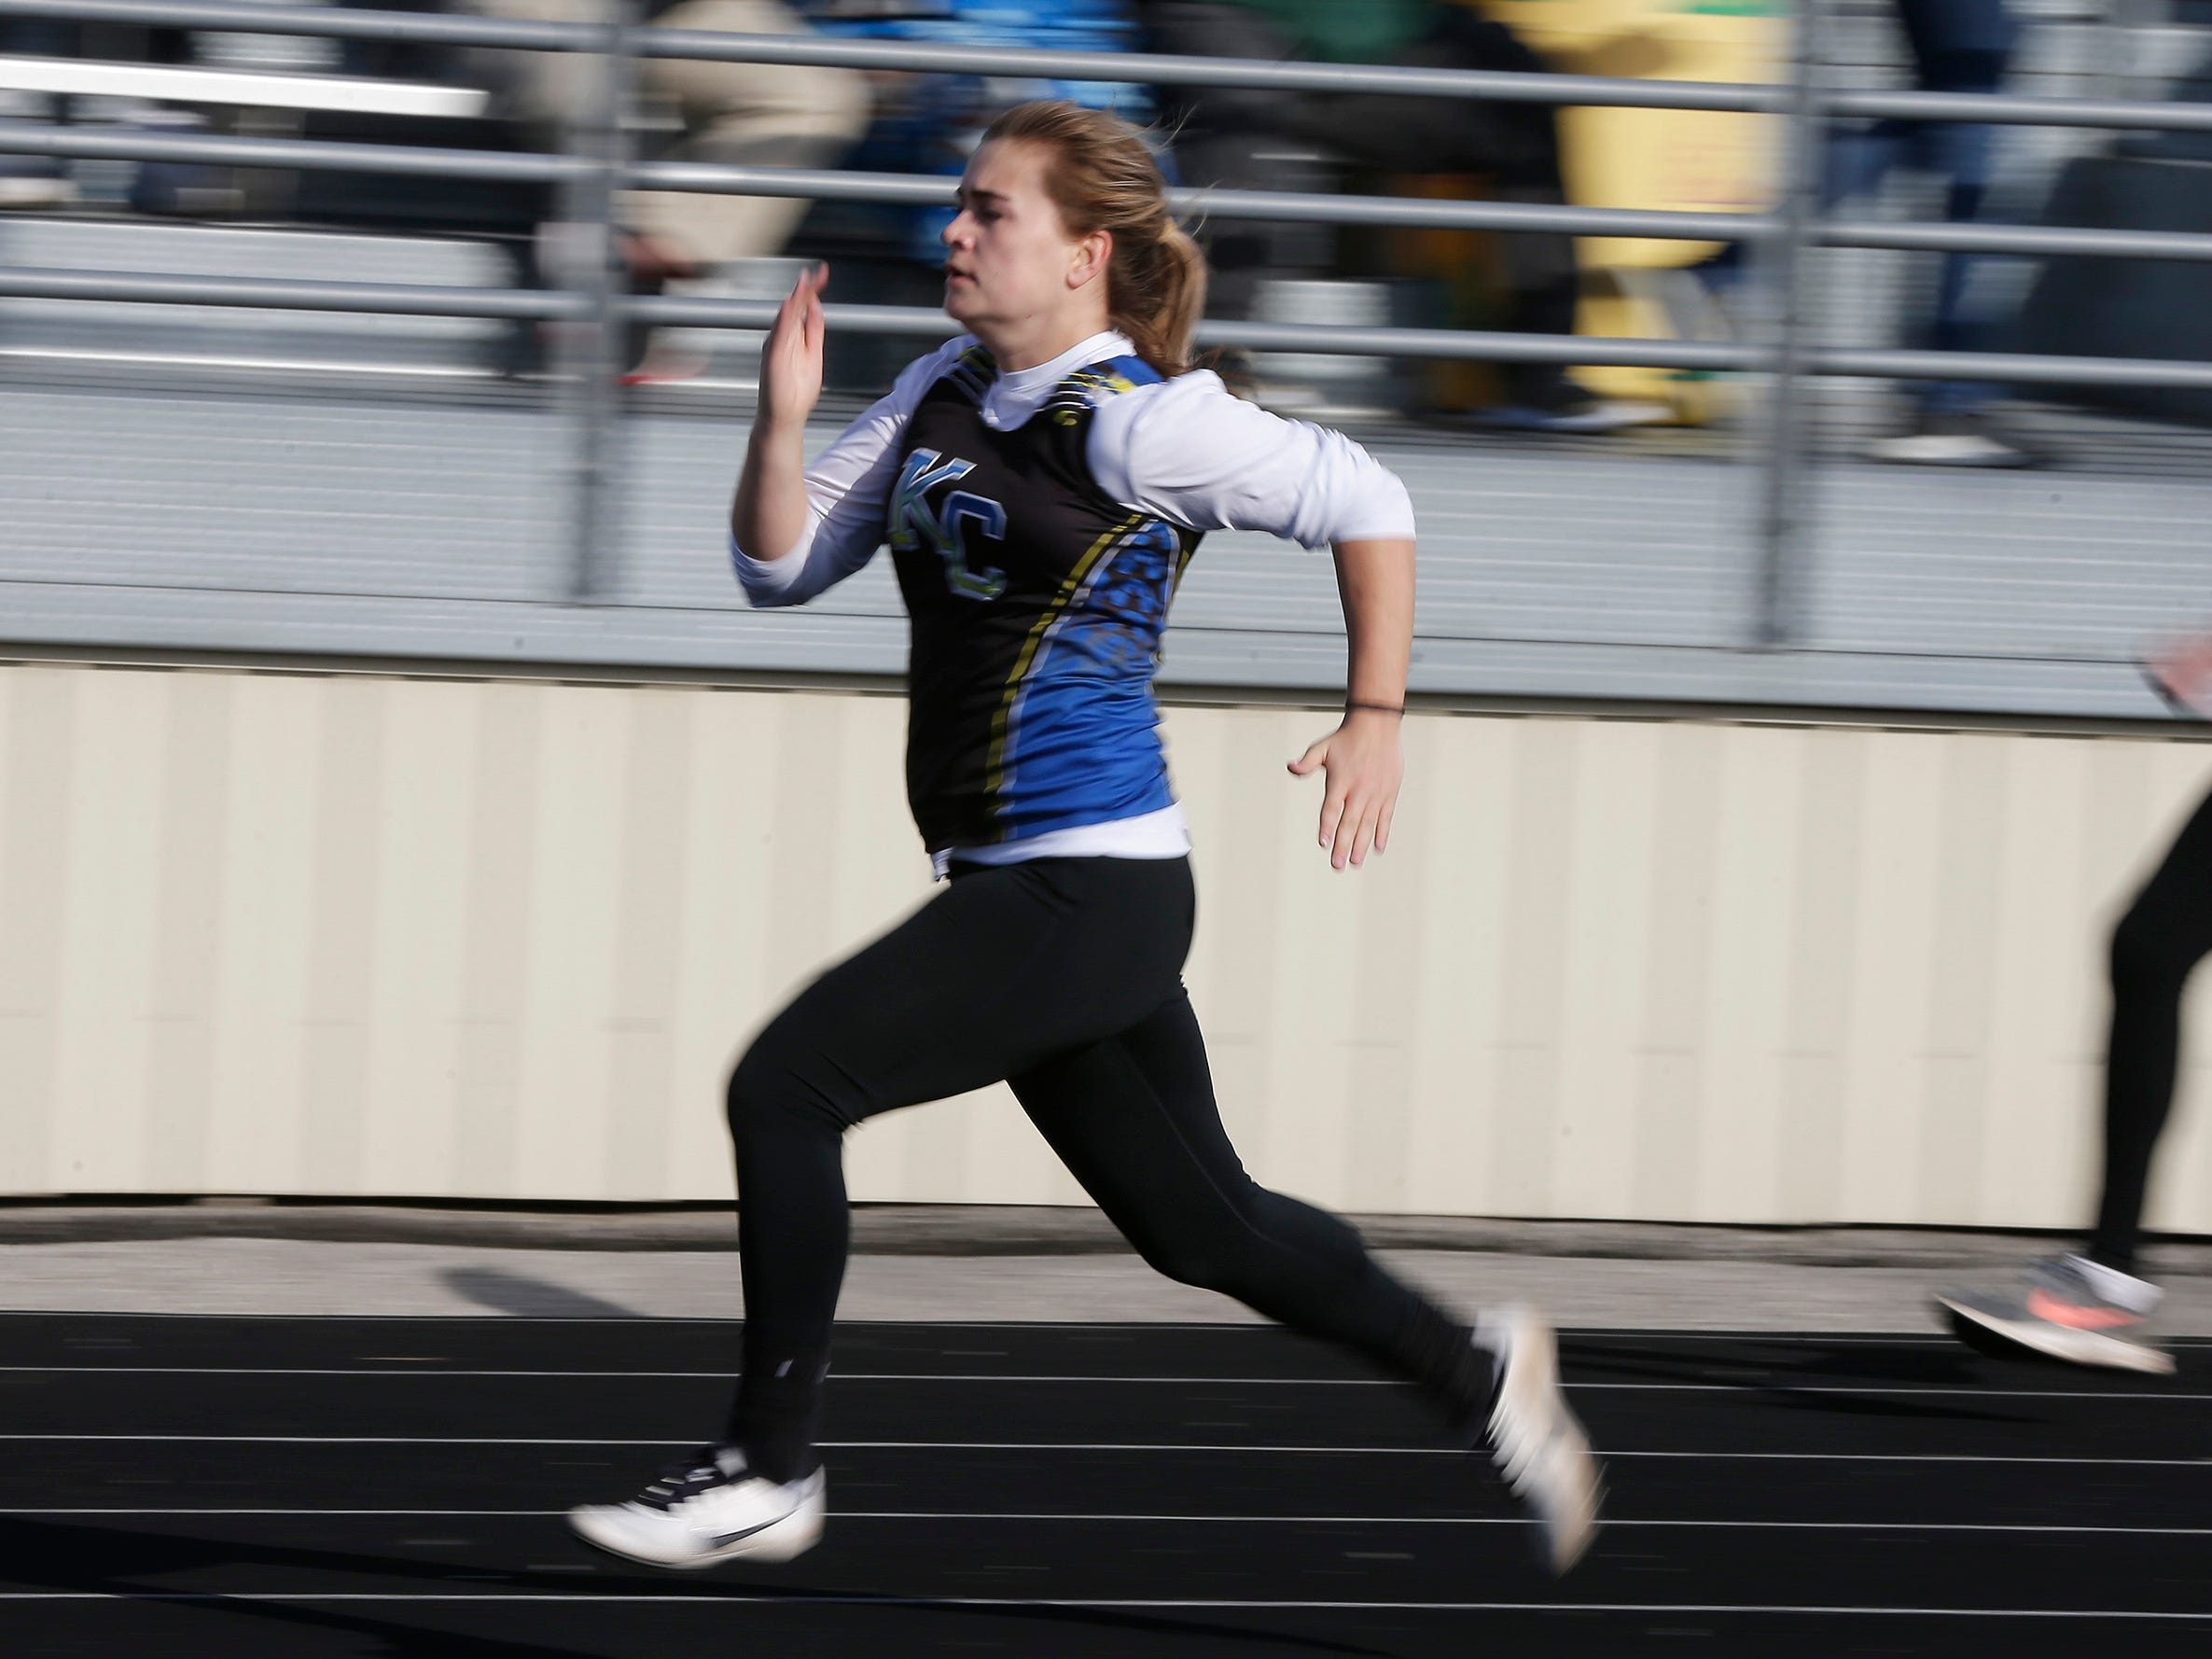 Sheboygan Kohler/Christian's Megan Moeller, left, sprints to win a heat in the 100 yard dash during the Howards Grove track meet, Tuesday, April 9, 2019, in Howards, Wis.